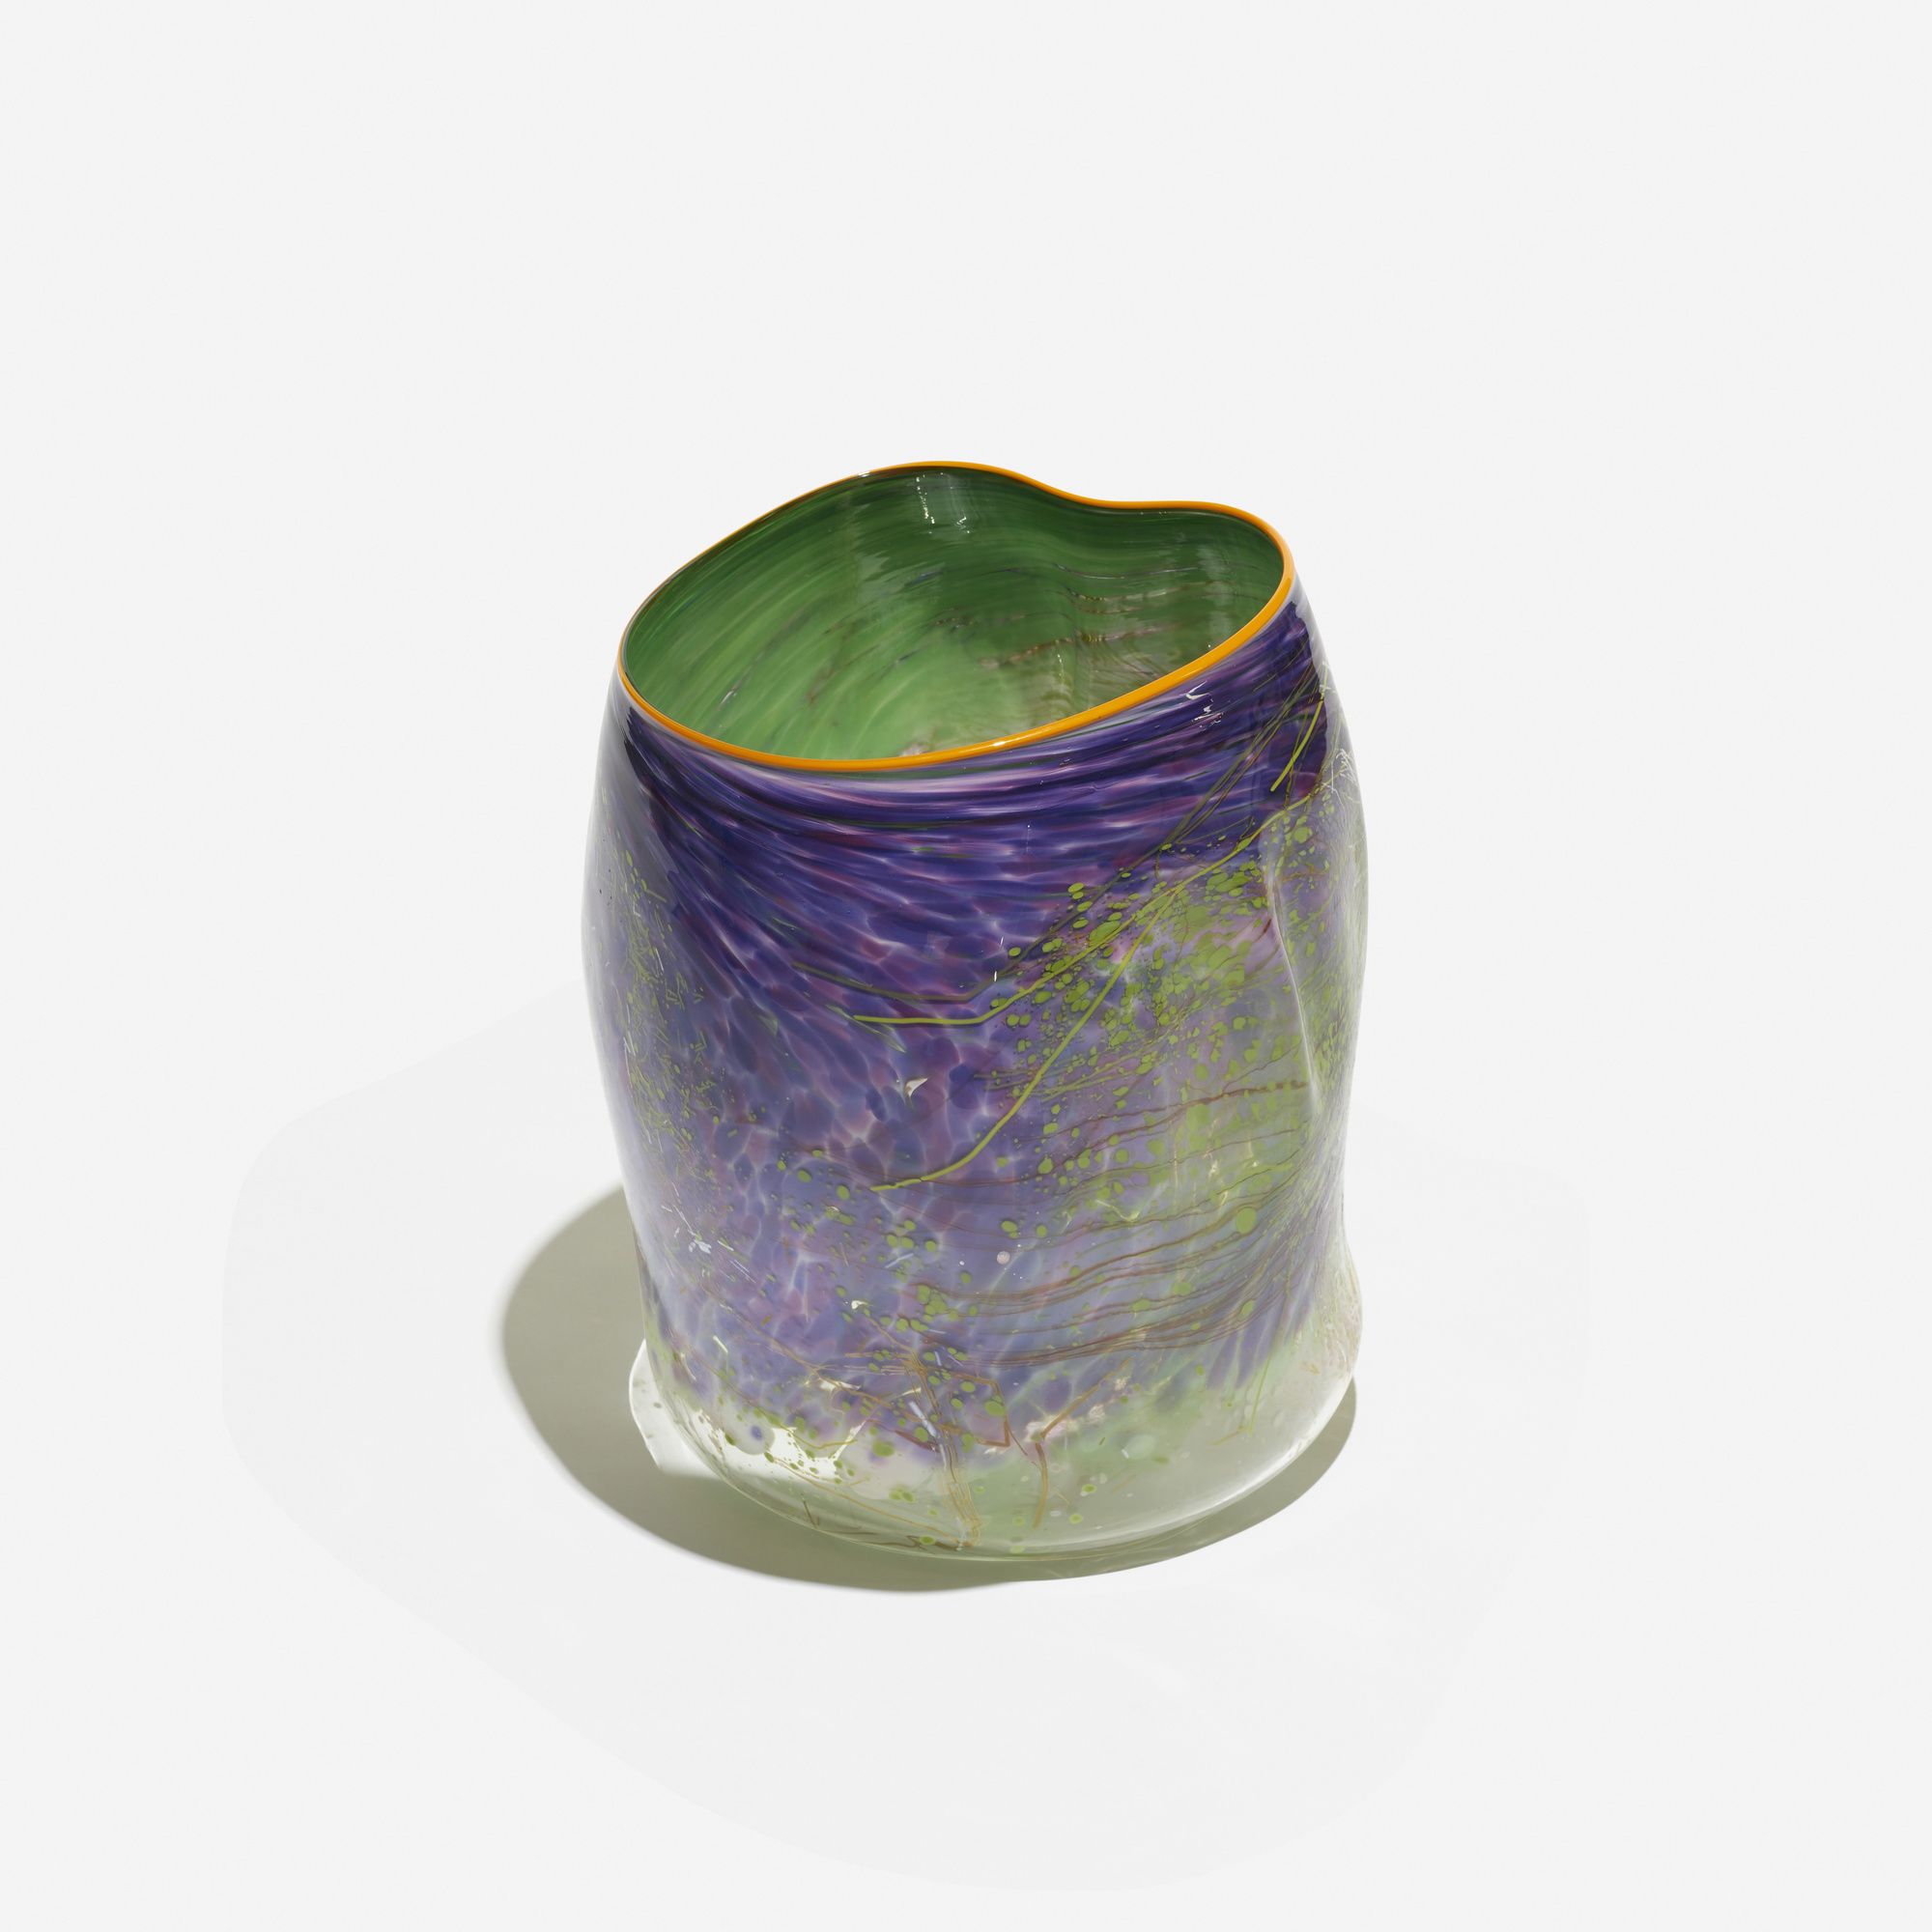 104: Dale Chihuly / Purple Lake Soft Cylinder with Terre Verte Drawing (2 of 3)